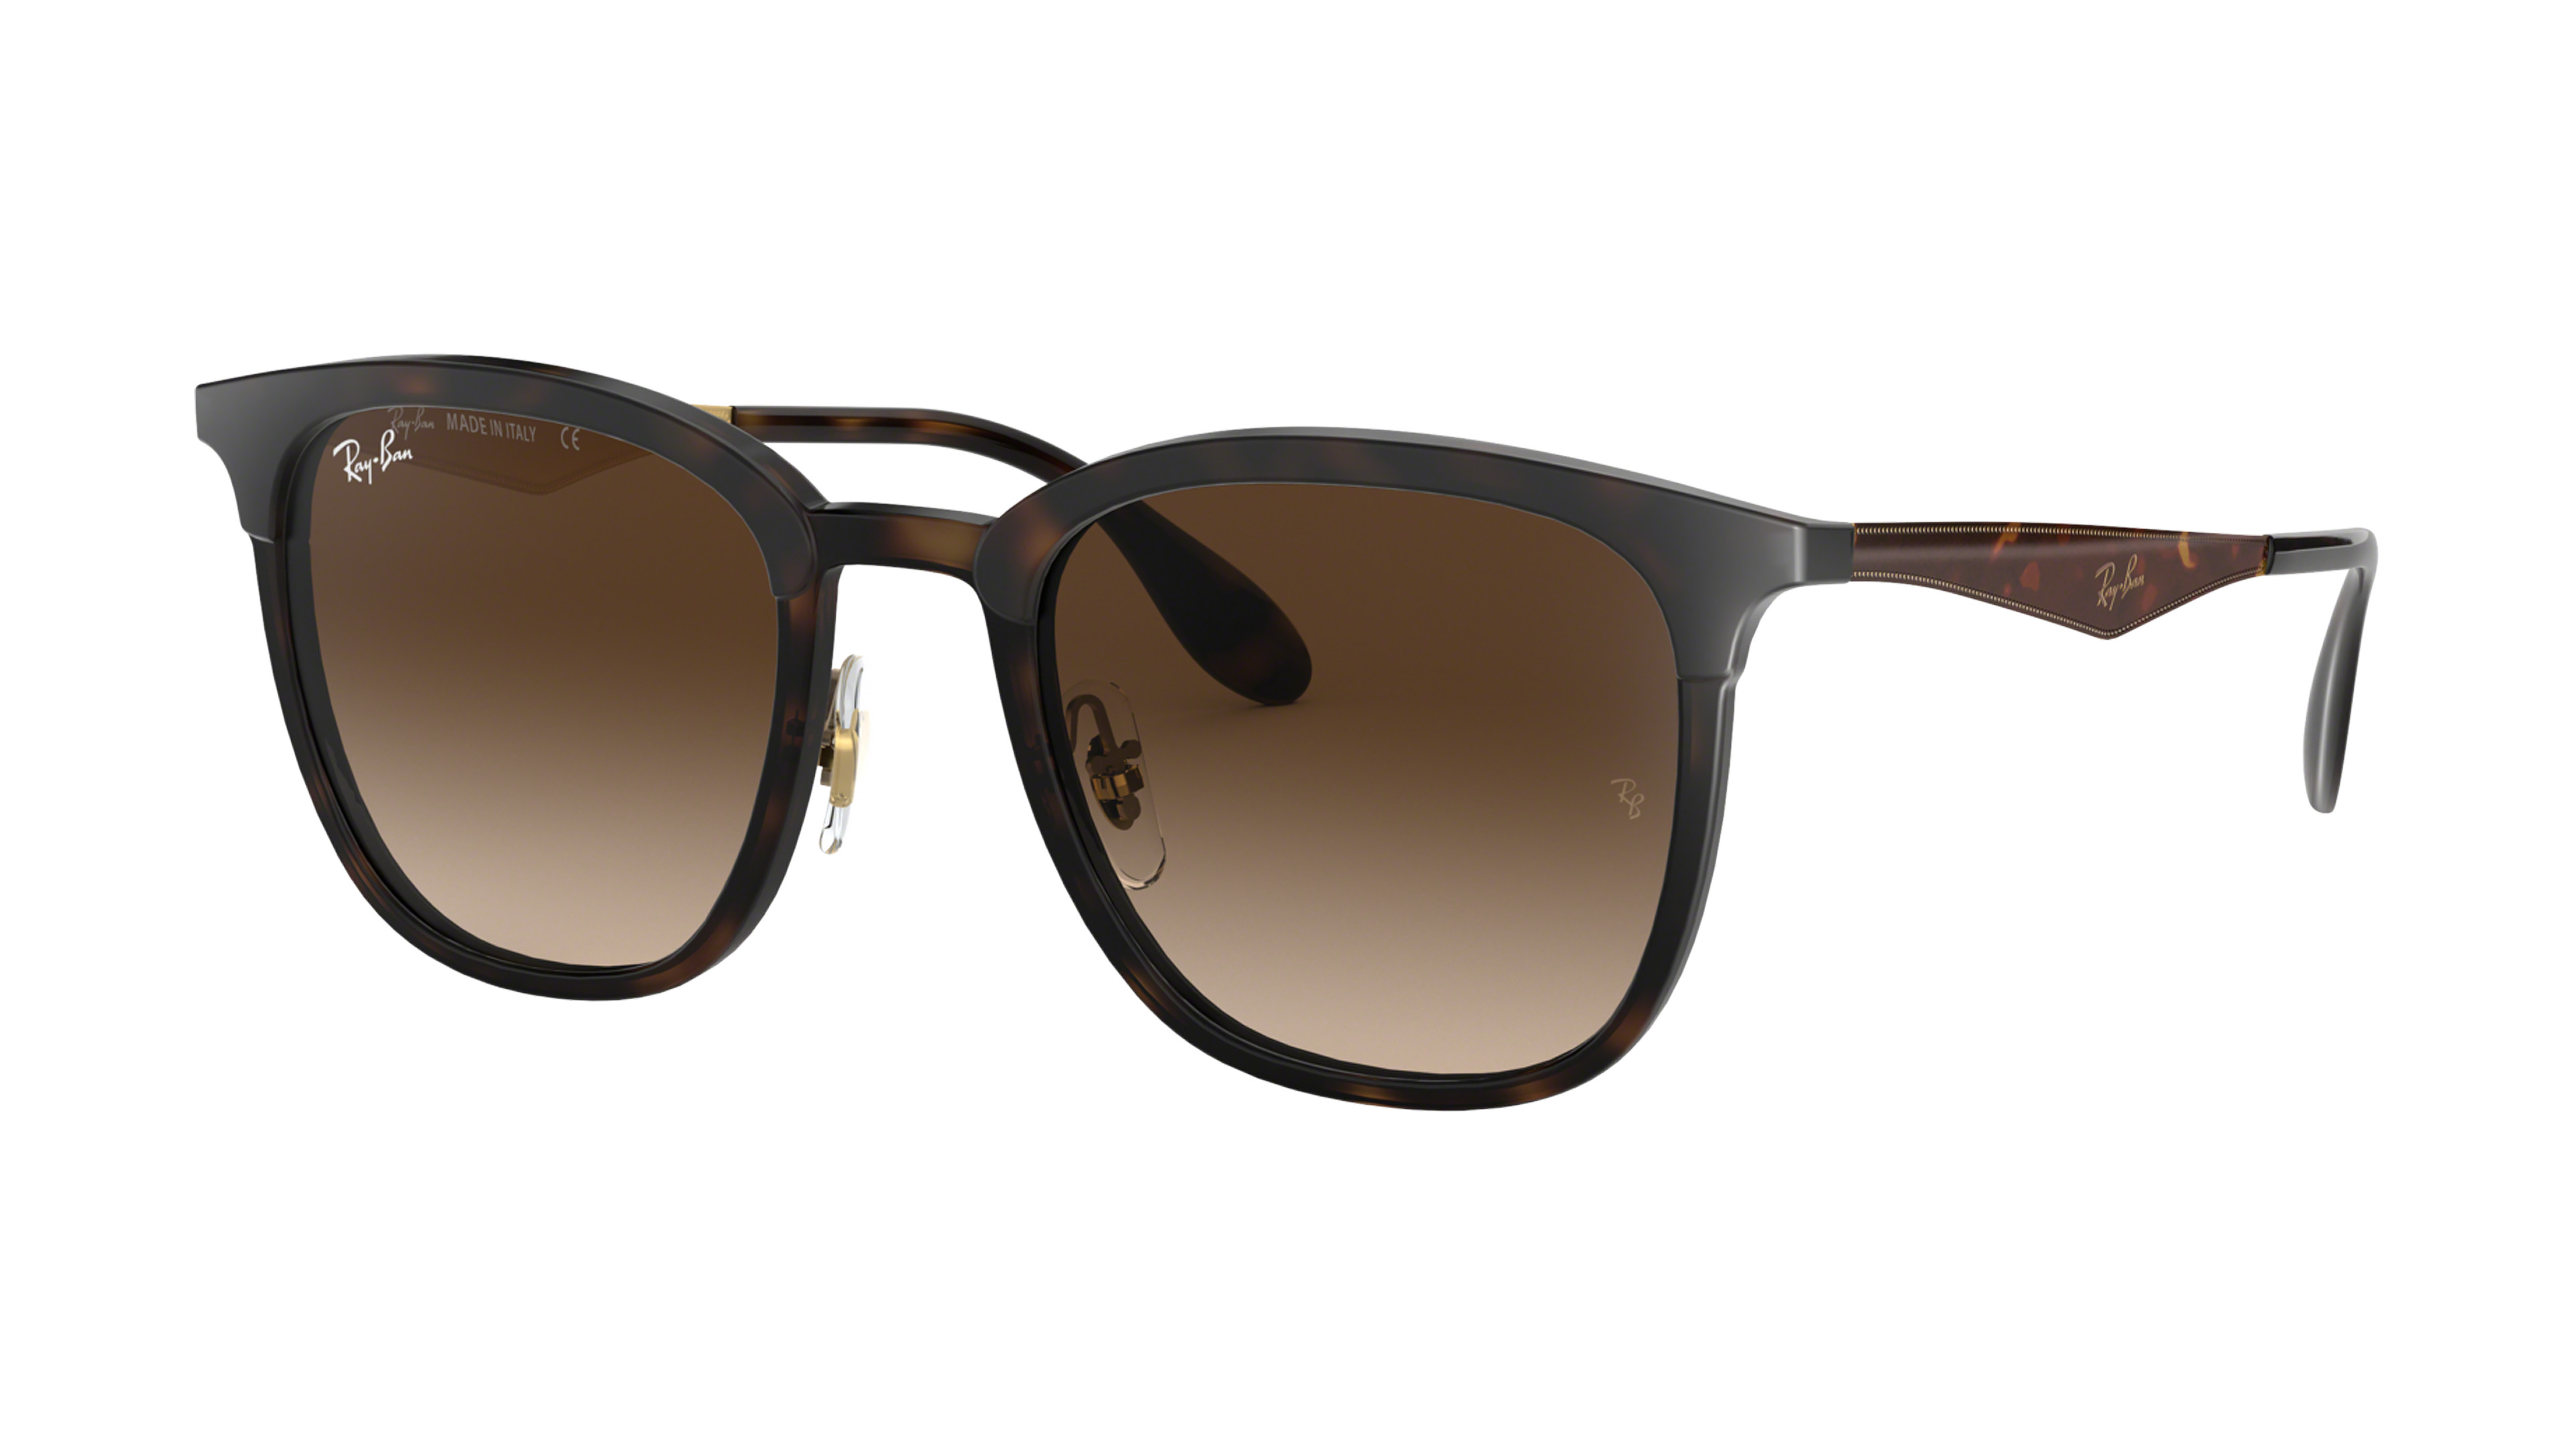 8053672730531-angle-Ray-Ban-Sonnenbrille-0RB4278-628313